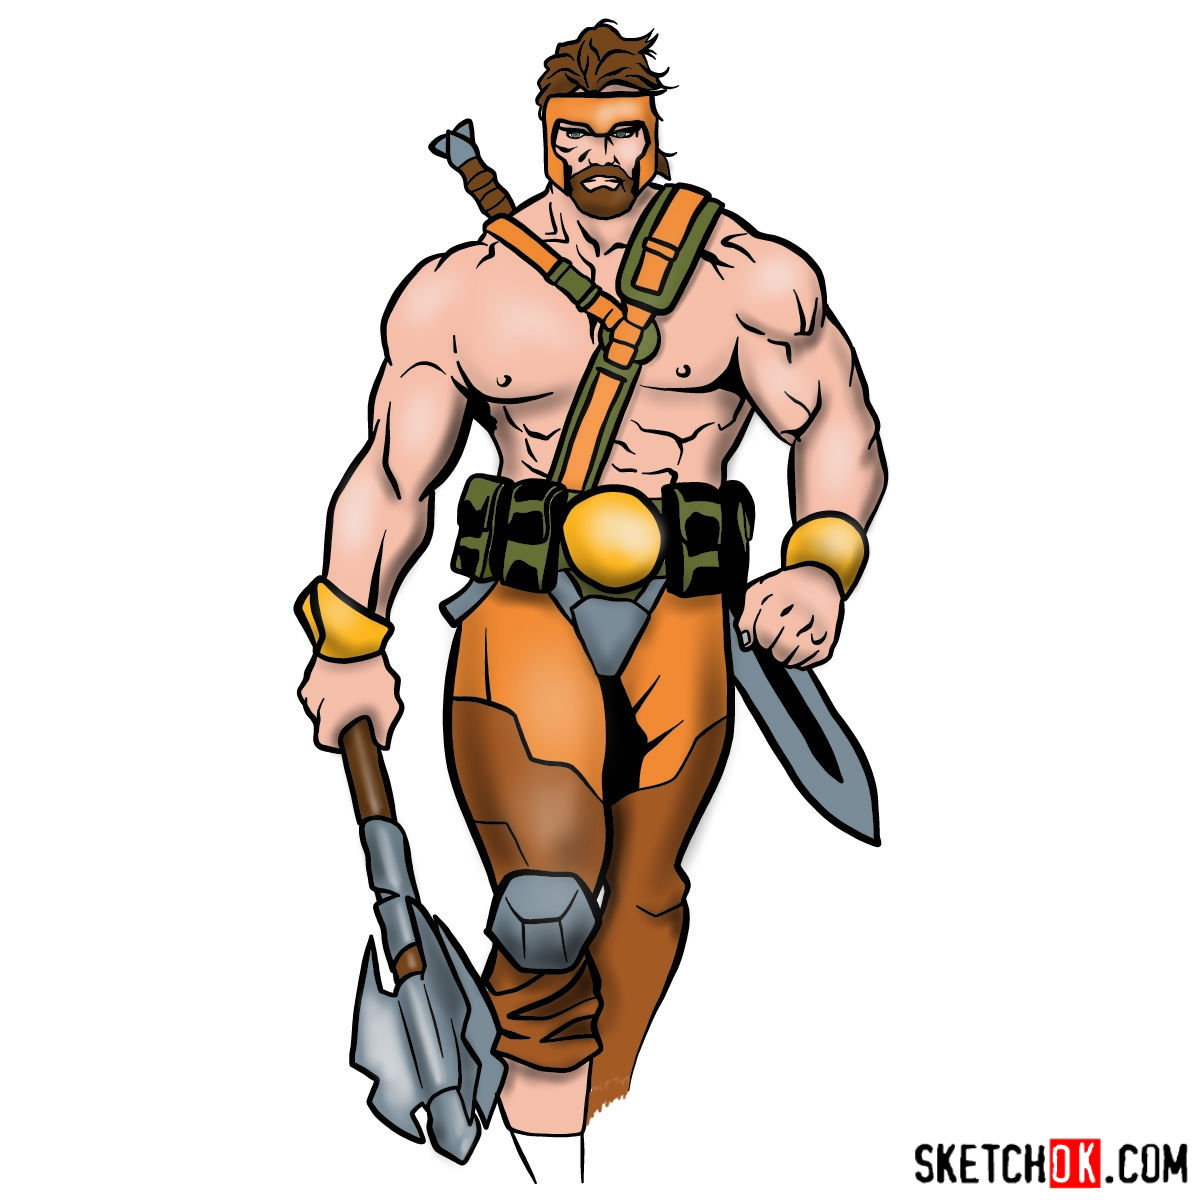 How to draw Hercules - Marvel Comics hero - coloring